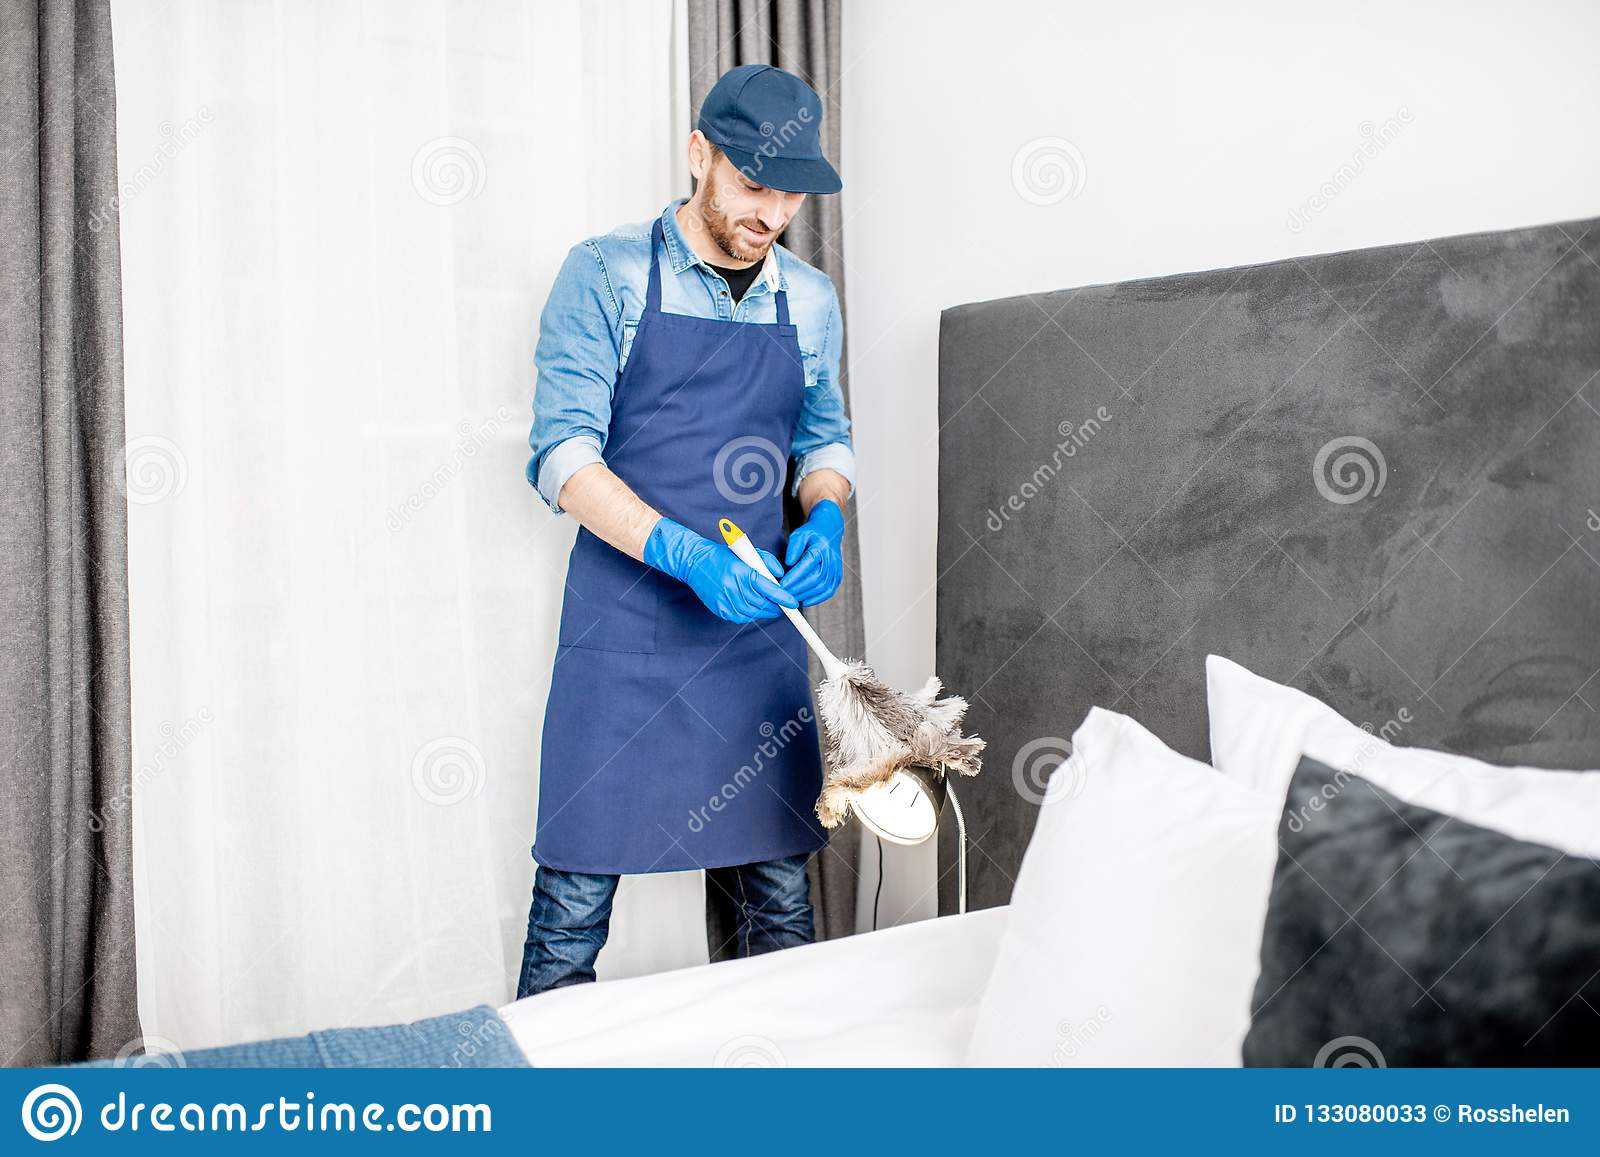 Man Cleaning In The Hotel Room Stock Image - Image of